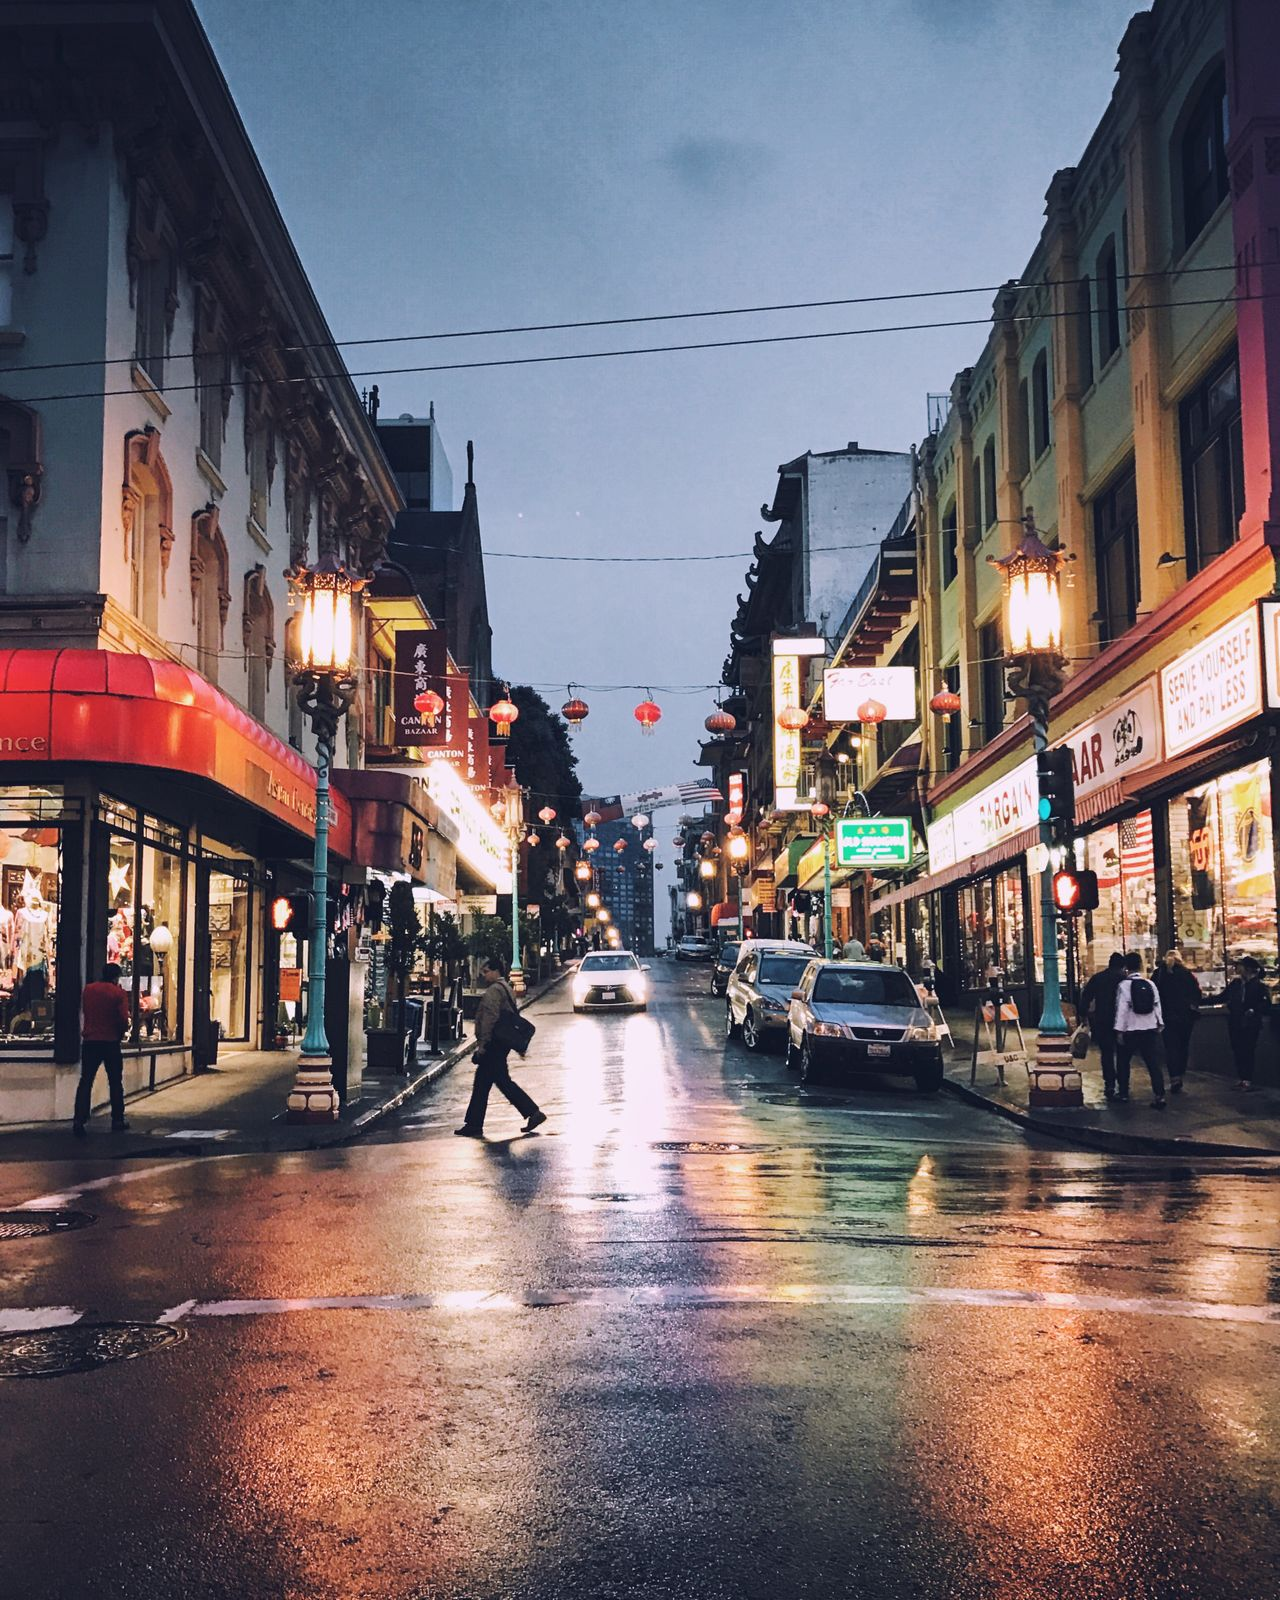 Street Architecture Building Exterior City Built Structure Illuminated Transportation City Street City Life Car Night Outdoors Road The Way Forward Group Of People Sky Men People Adult Adults Only